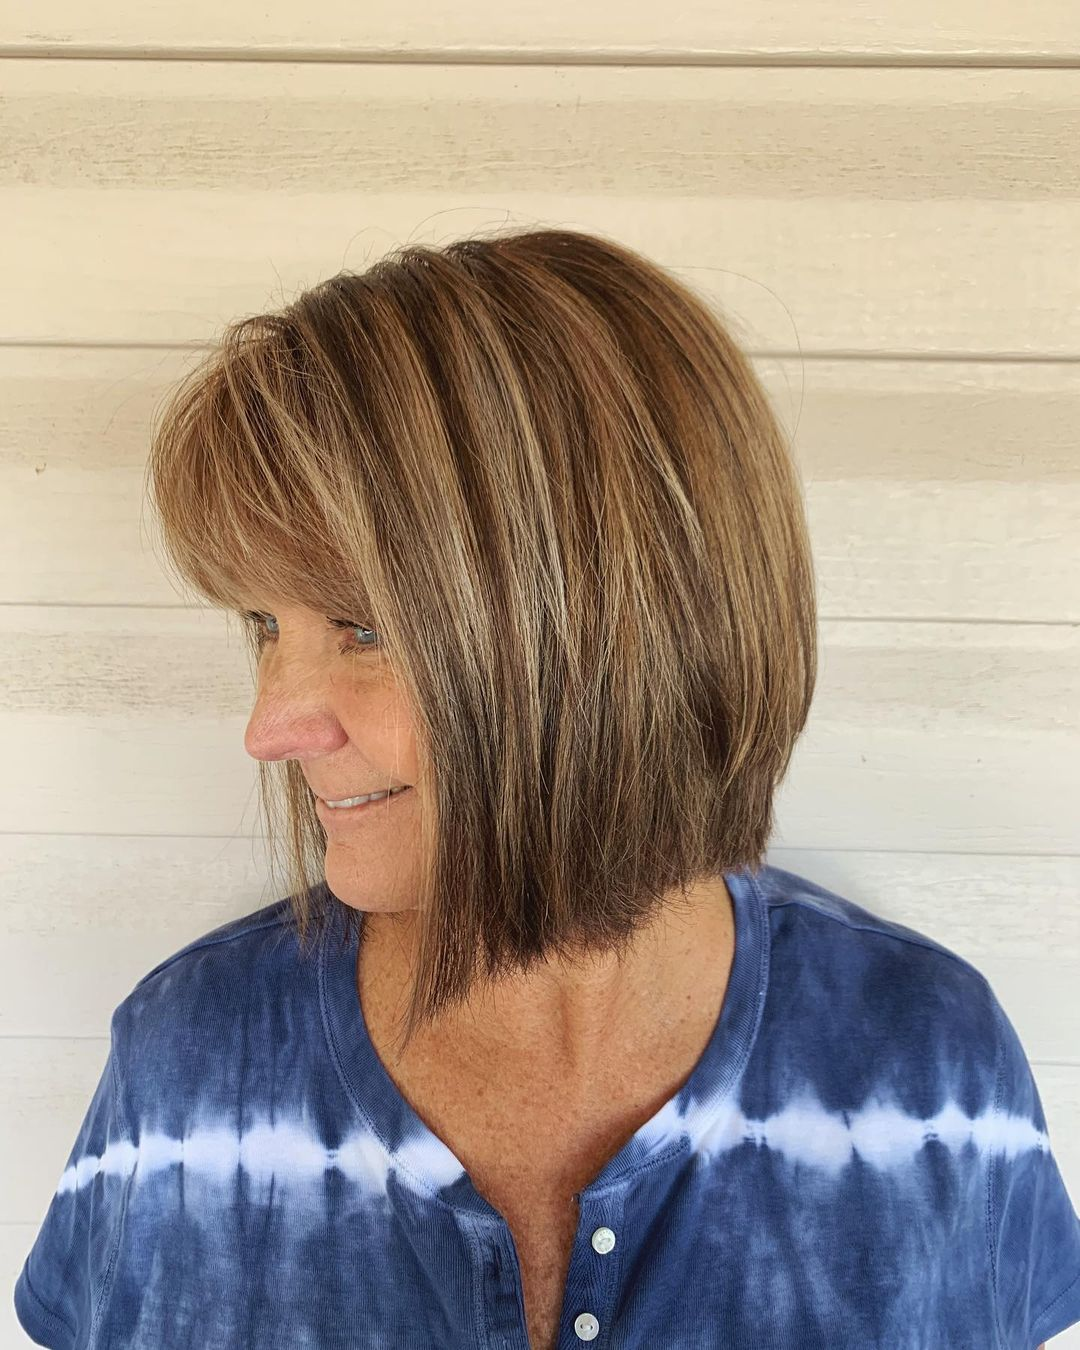 Christmas Hairstyles Over 40 2021 42 Sexiest Short Hairstyles For Women Over 40 In 2021